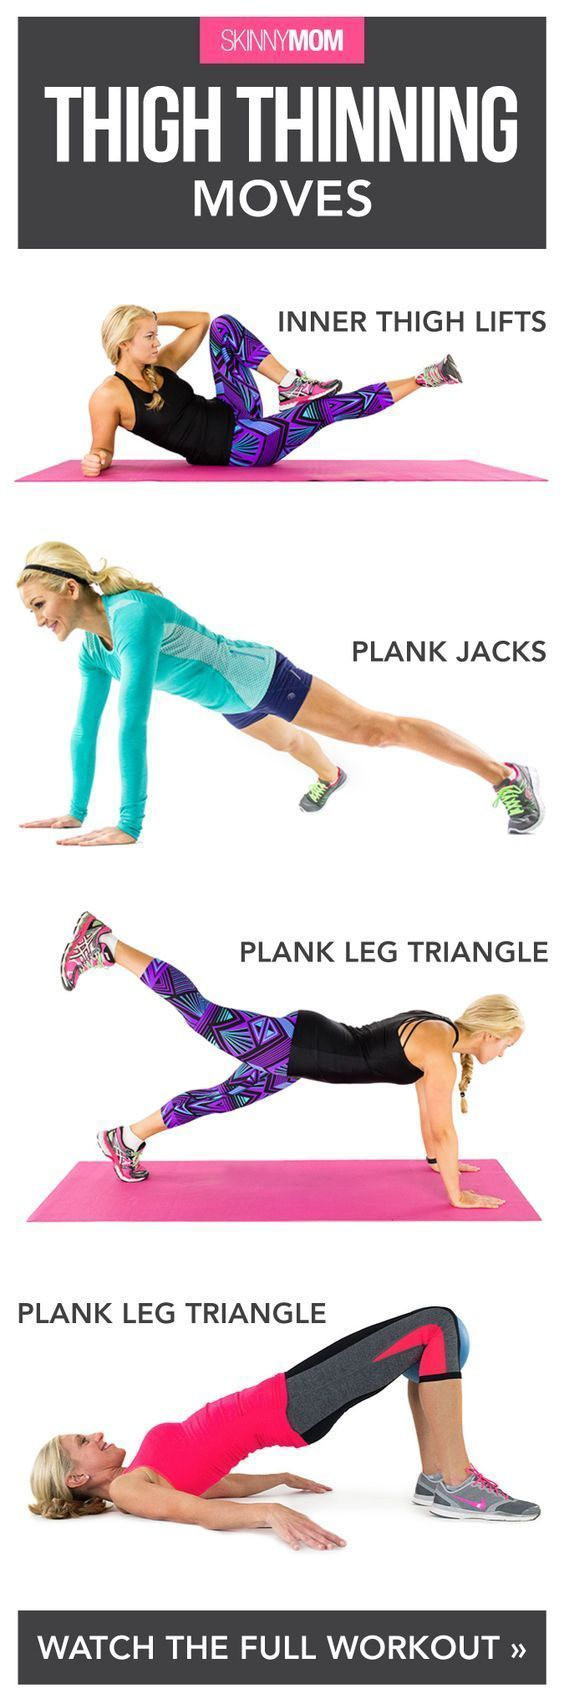 GameChanging Exercises Thatull Transform Your Thighs  Fitness